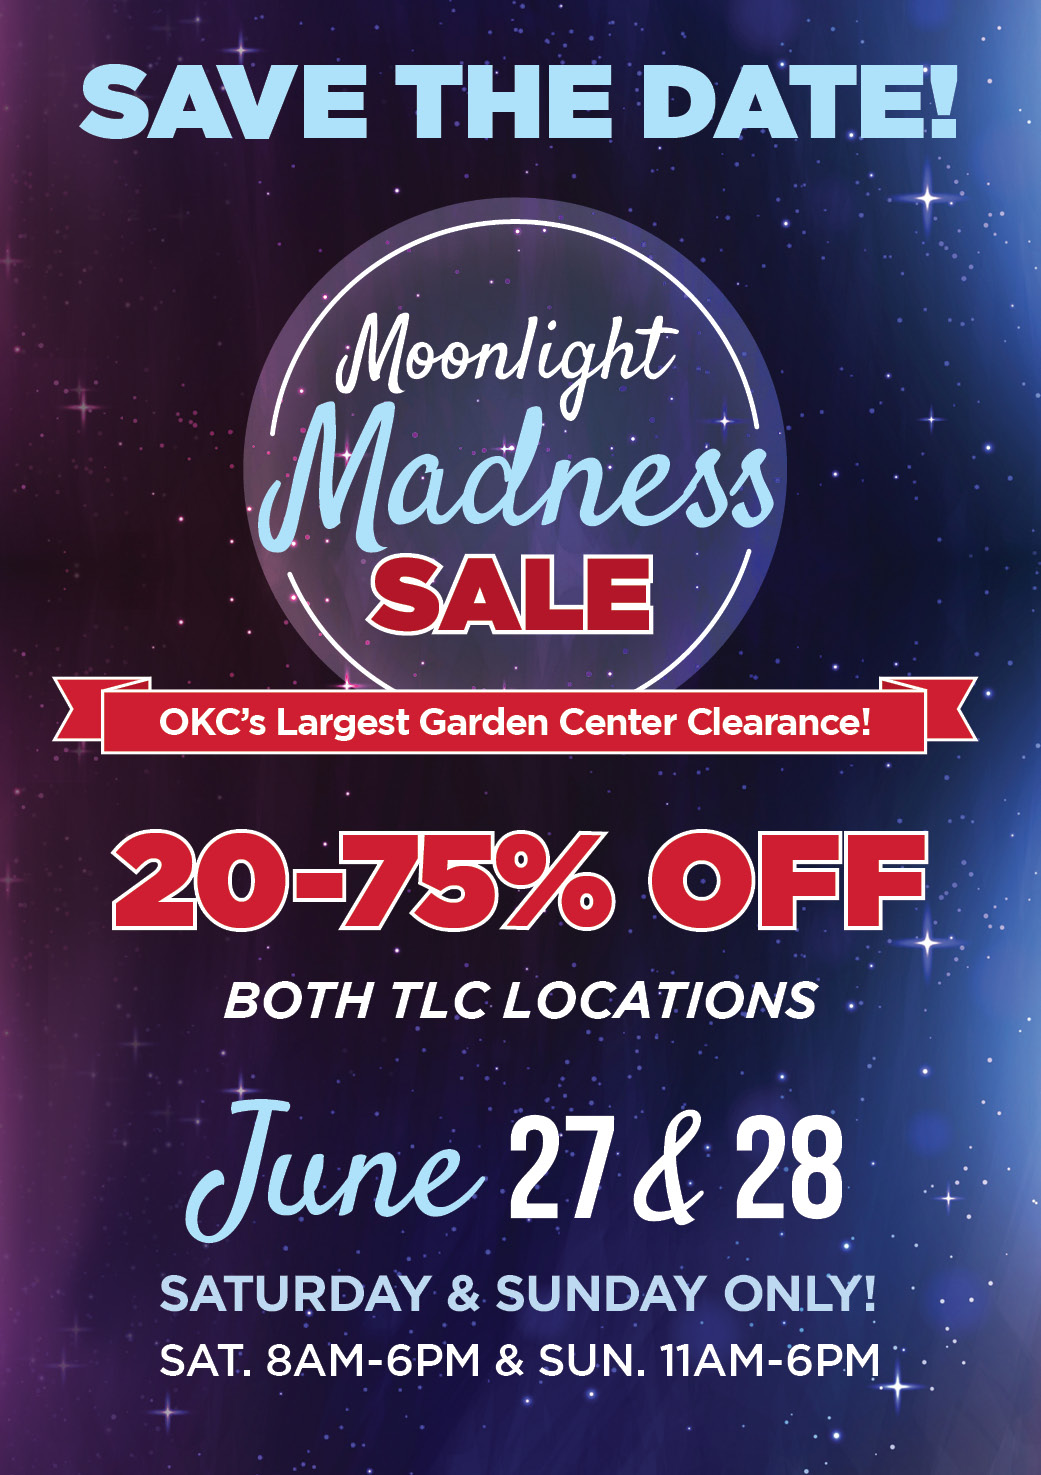 Moonlight Madness | TLC Garden Centers